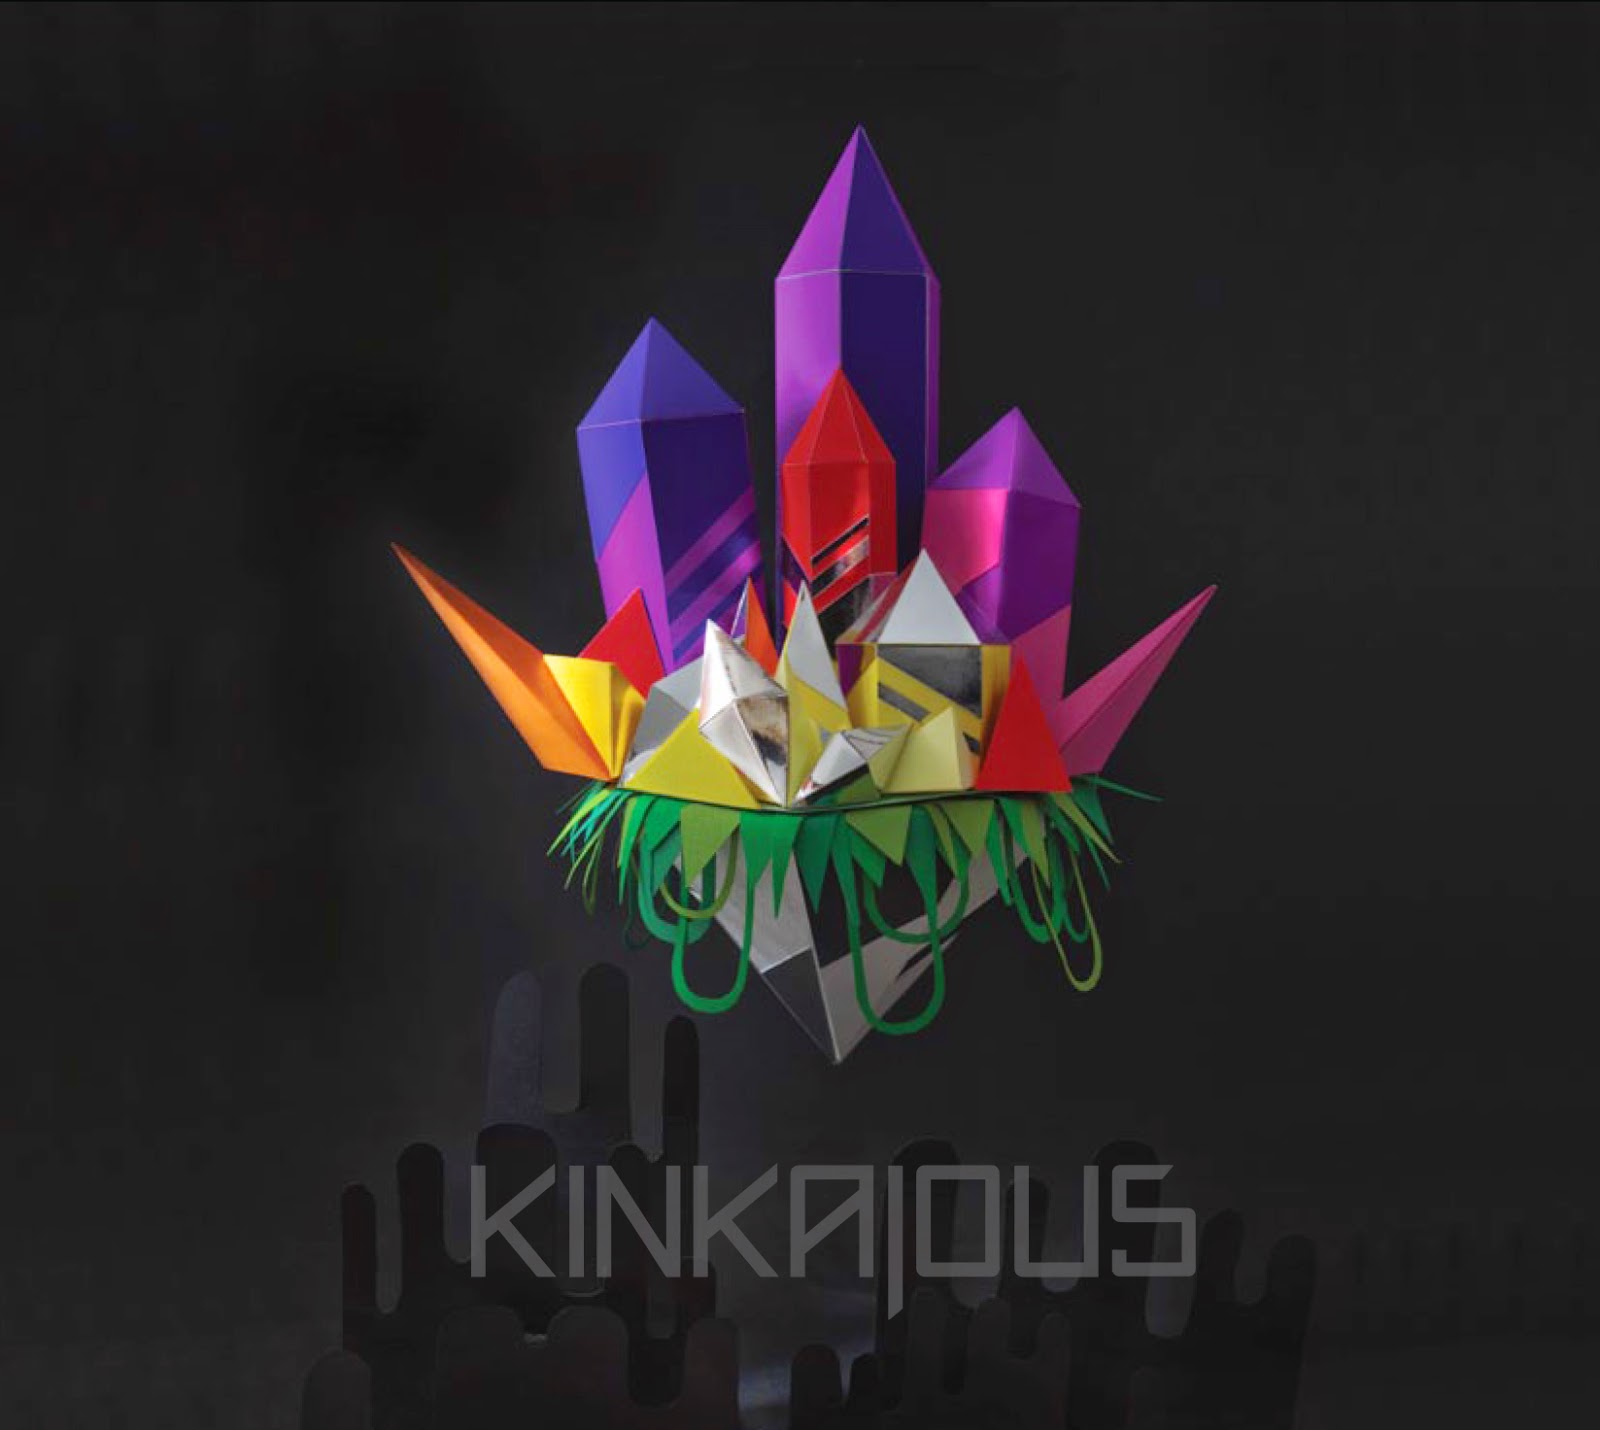 http://www.d4am.net/2014/10/kinkajous-self-titled-ep.html